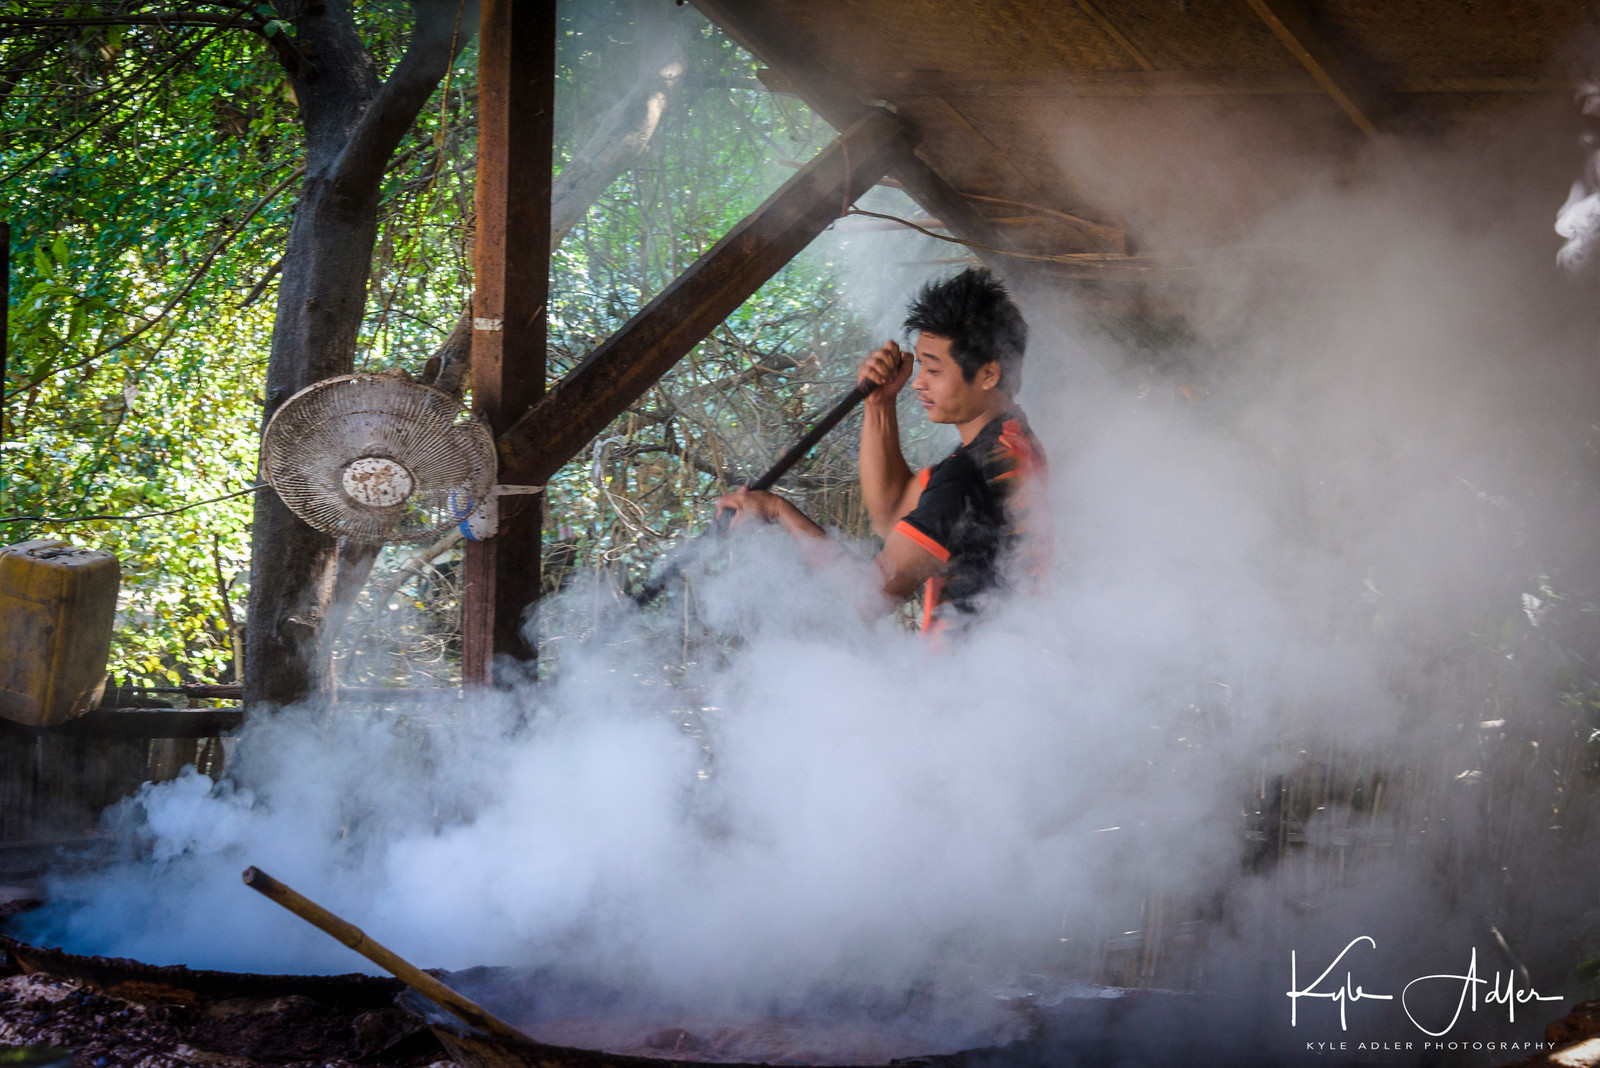 Escaping steam nearly obscures a worker at a Bagan workshop where pone ye gyi (a popular flavored soybean sauce) is made.